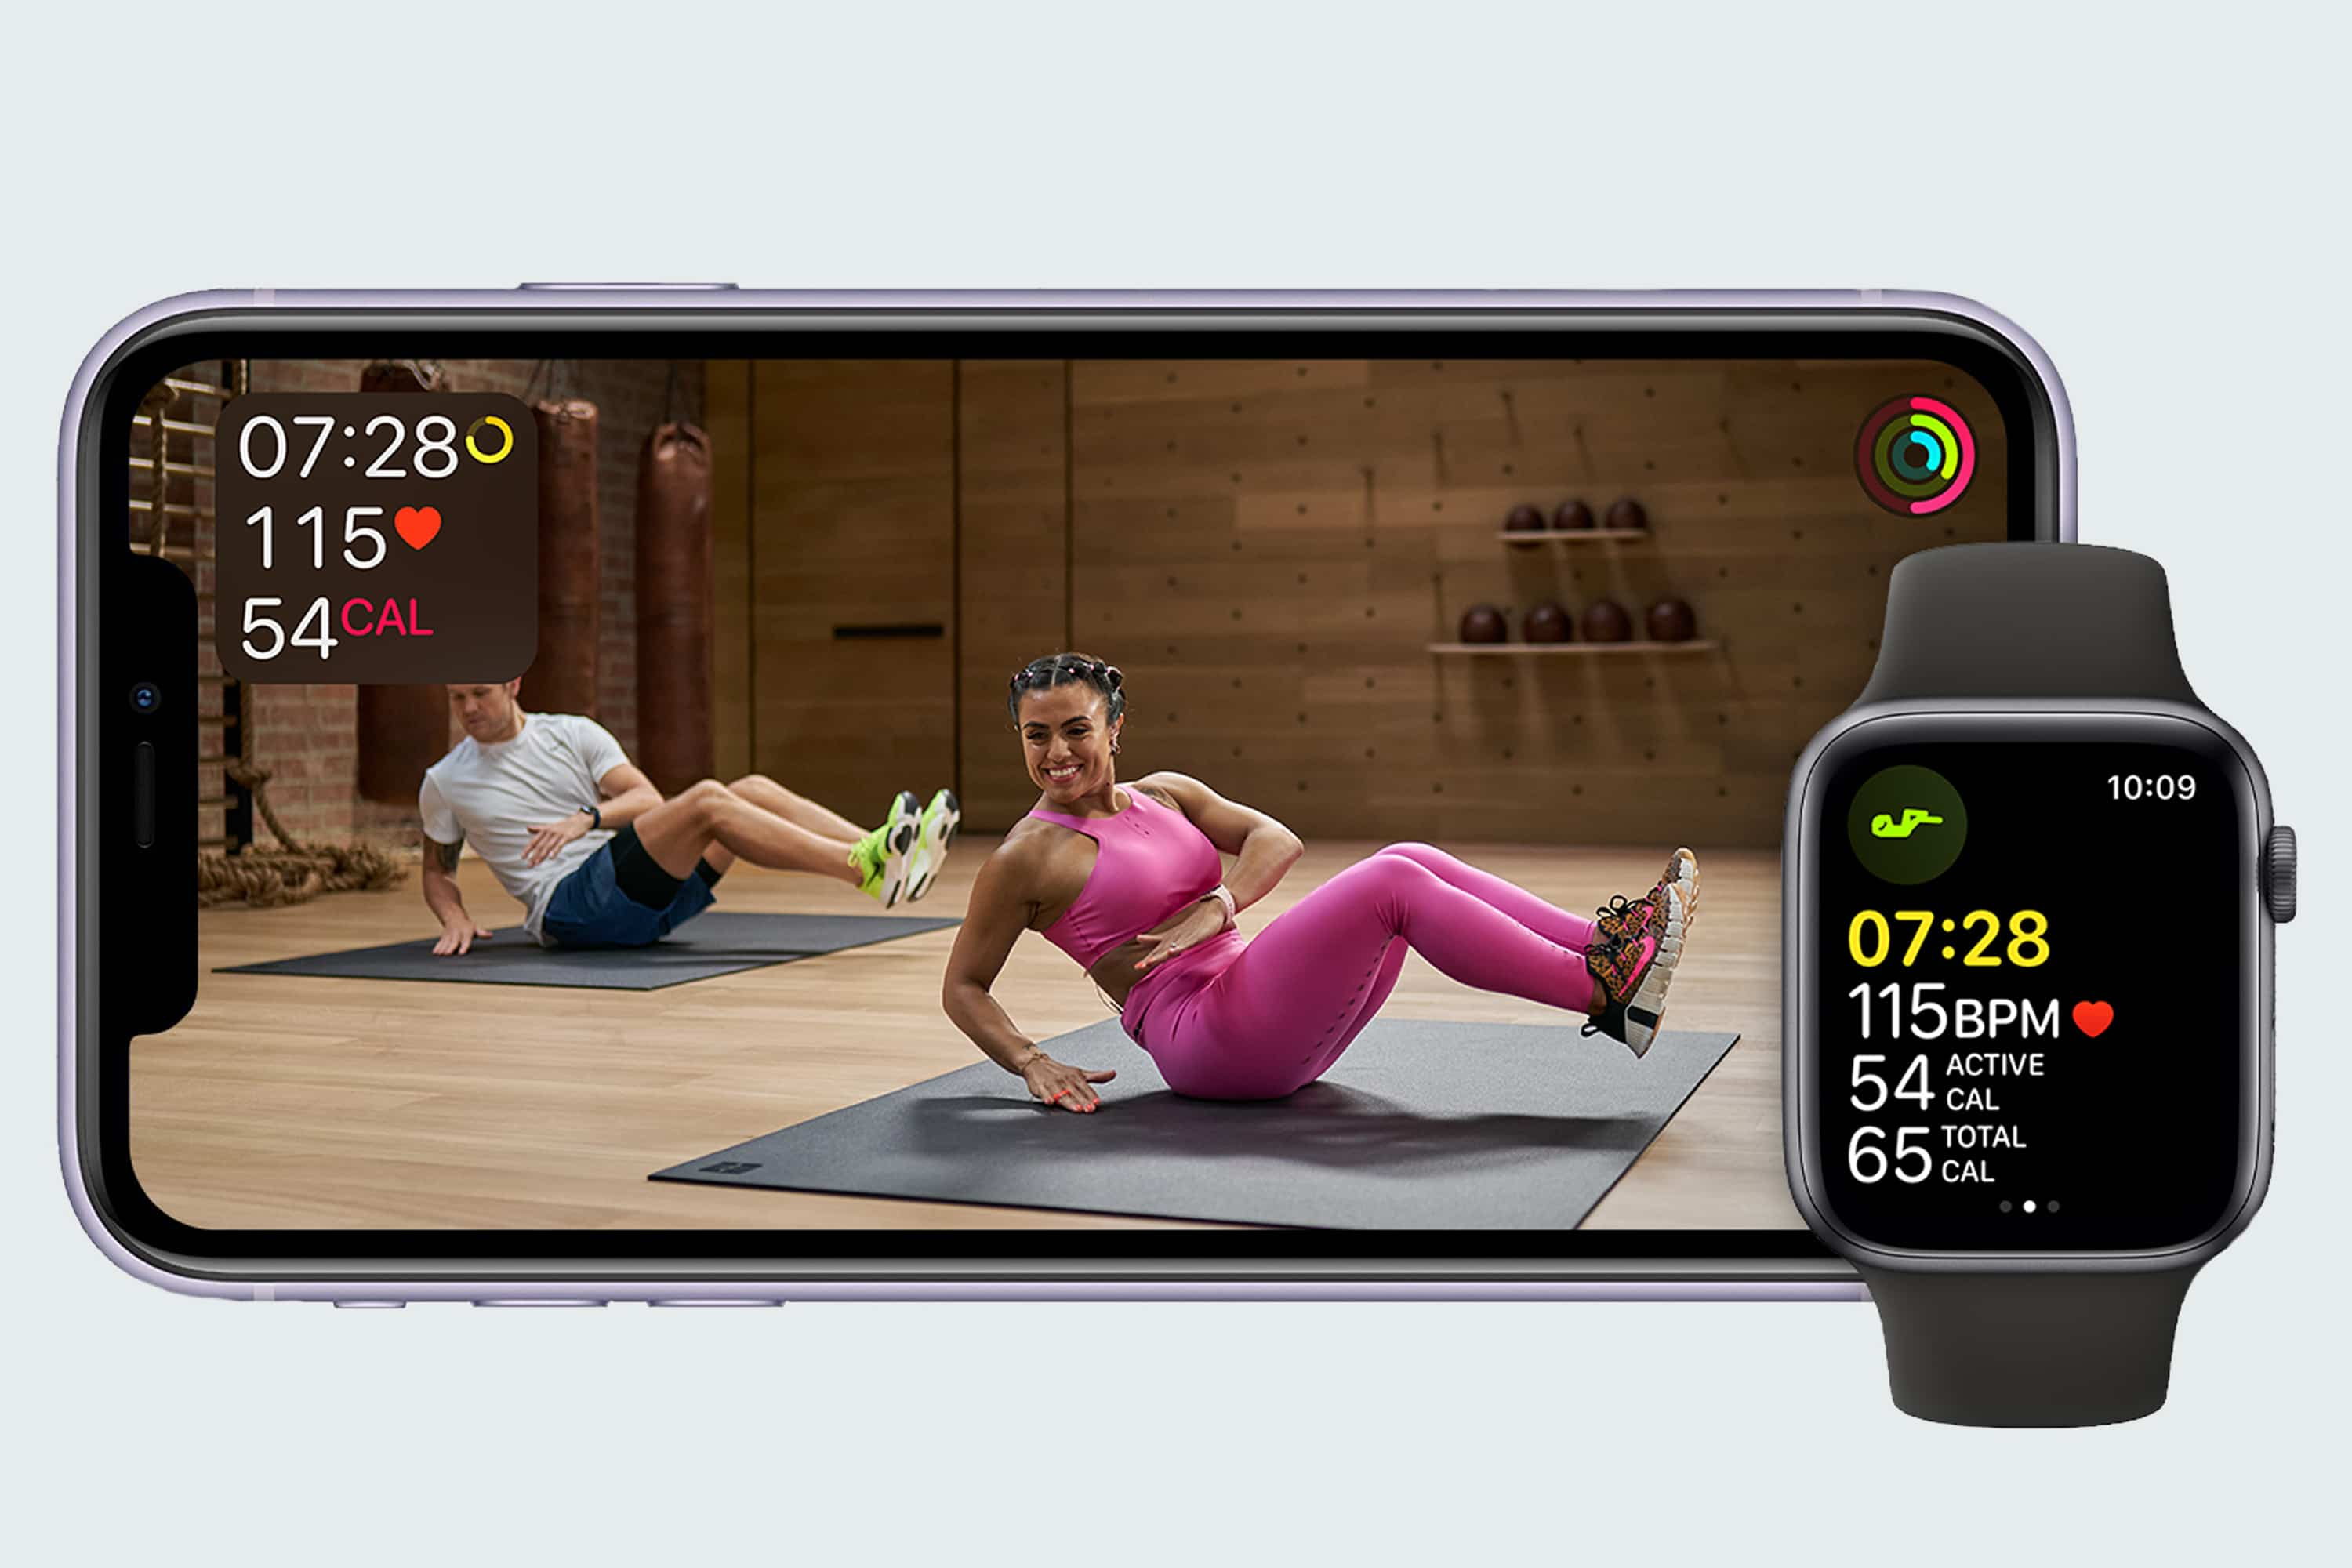 apple-shares-helpful-tips-for-fitness-plus-20201216-3